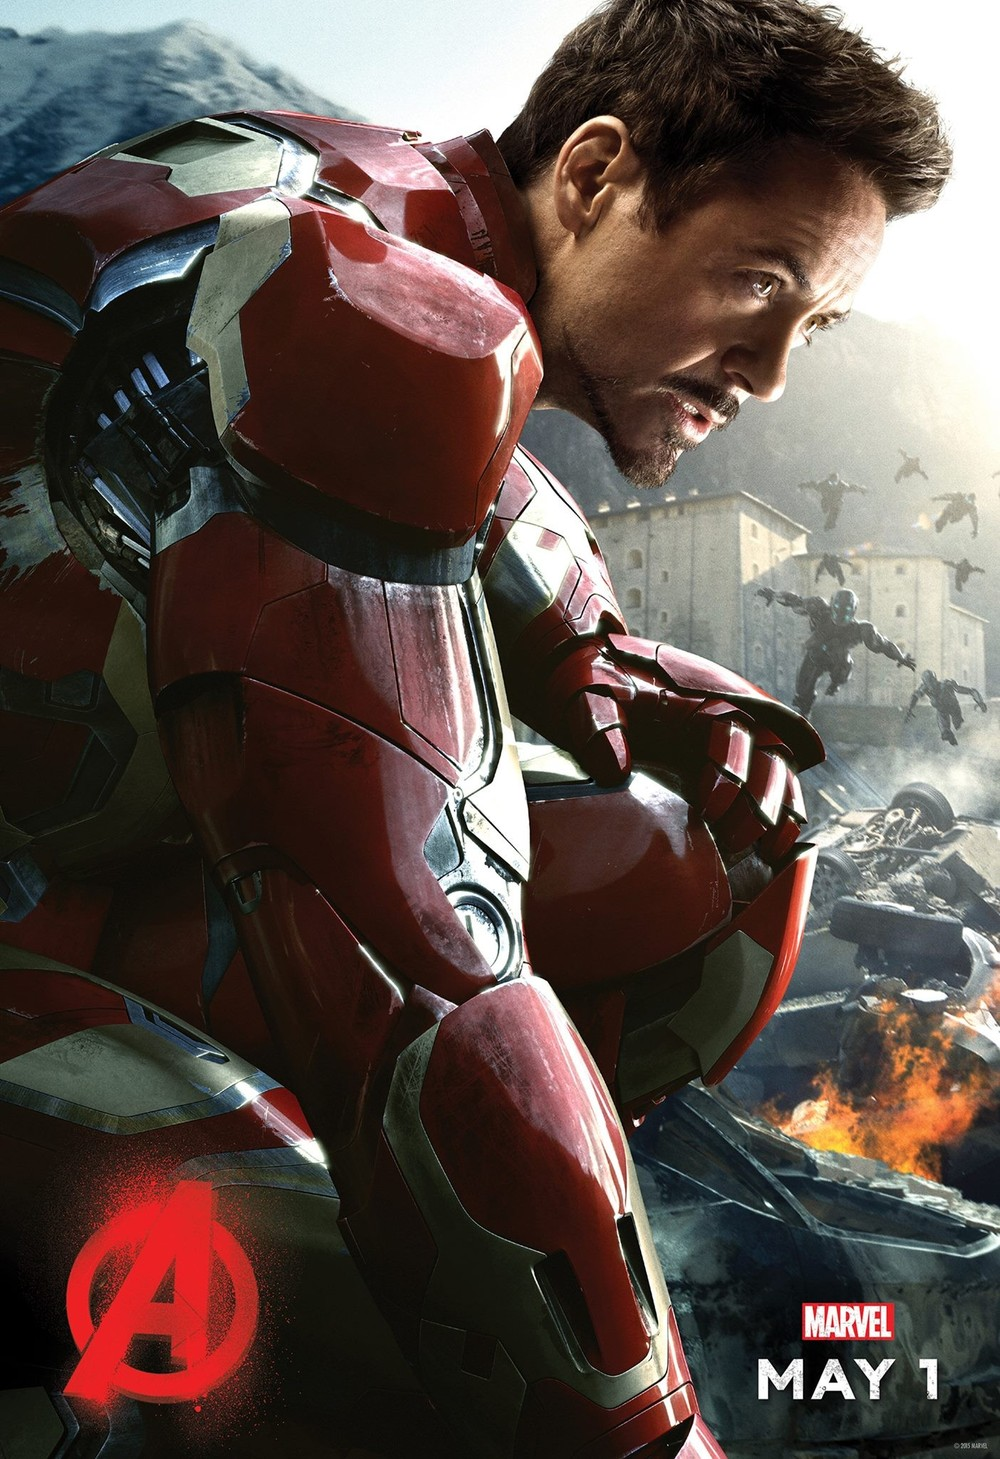 The avengers age of ultron release date